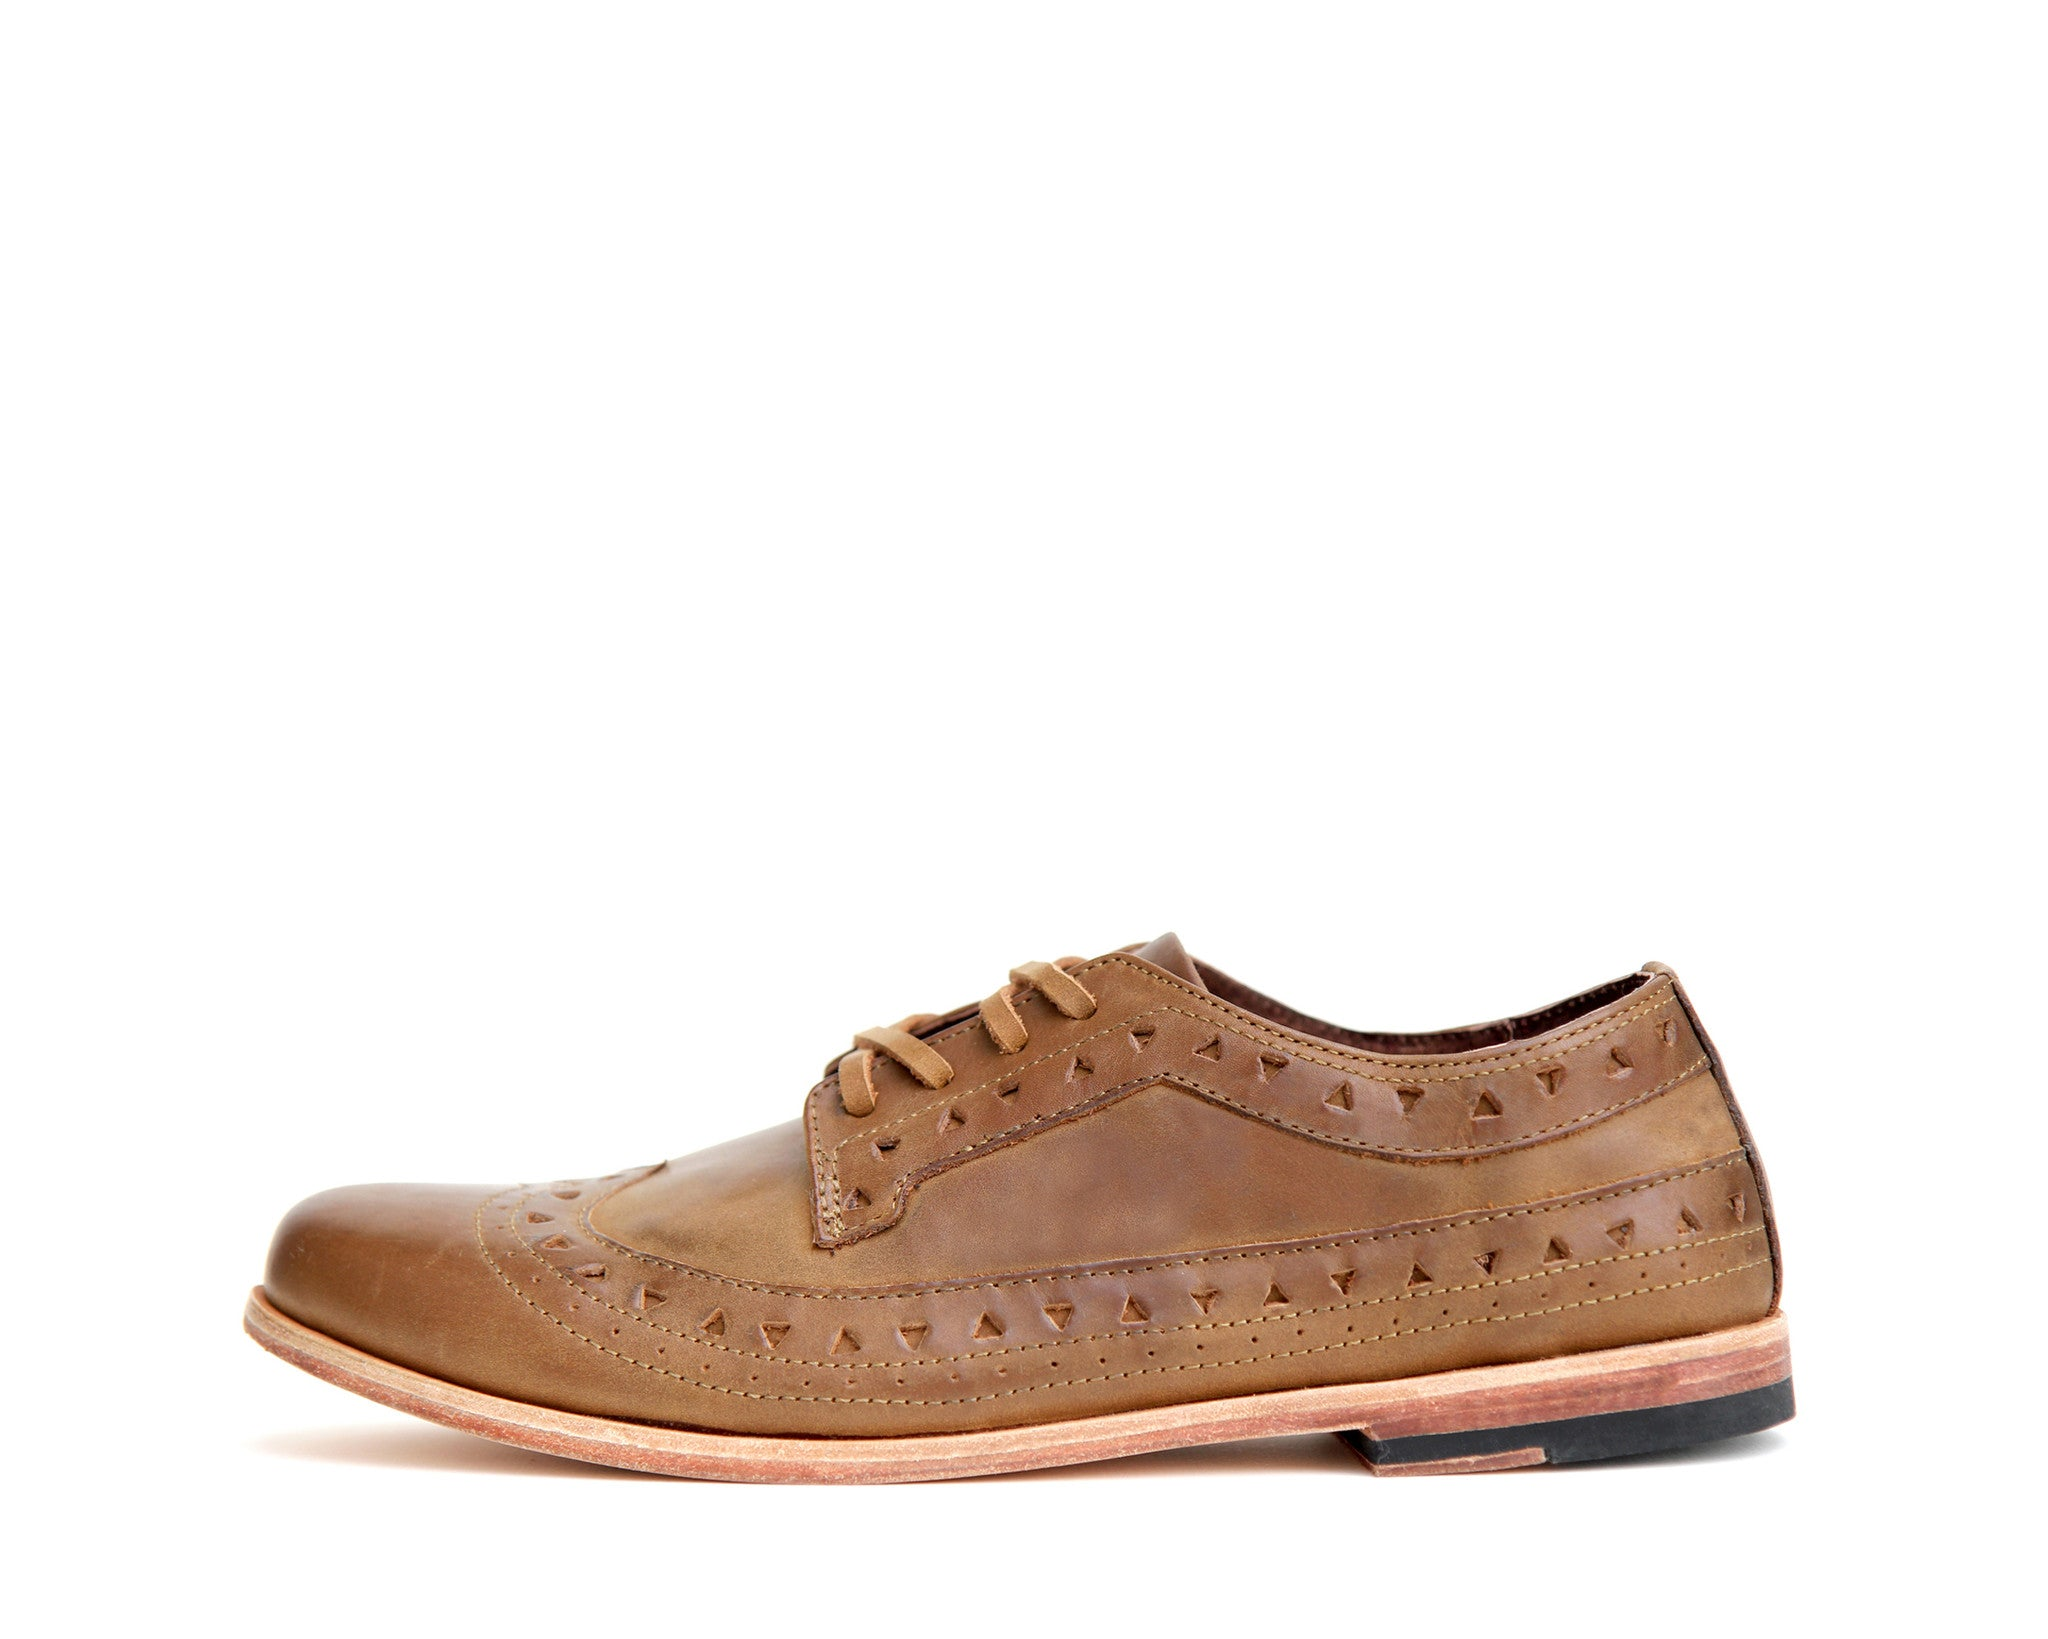 Men's Footwear: Bobby - Wheat - Leather sole | Mere